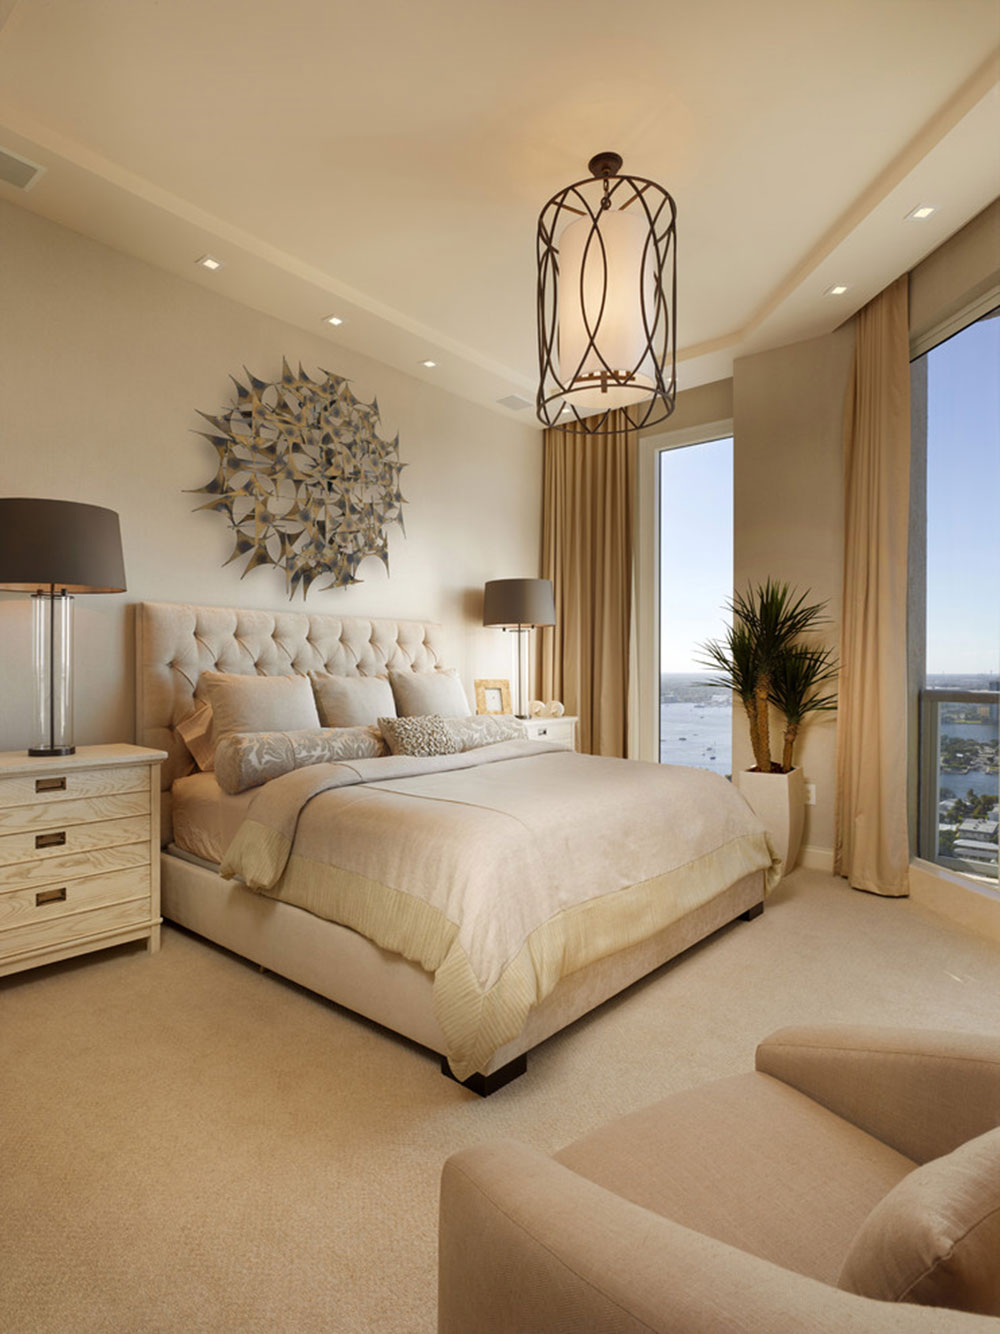 Sweet-Dreams-With-These-Beautiful-Headboard-Design-Ideen4 Beautiful Headboard Design Ideas